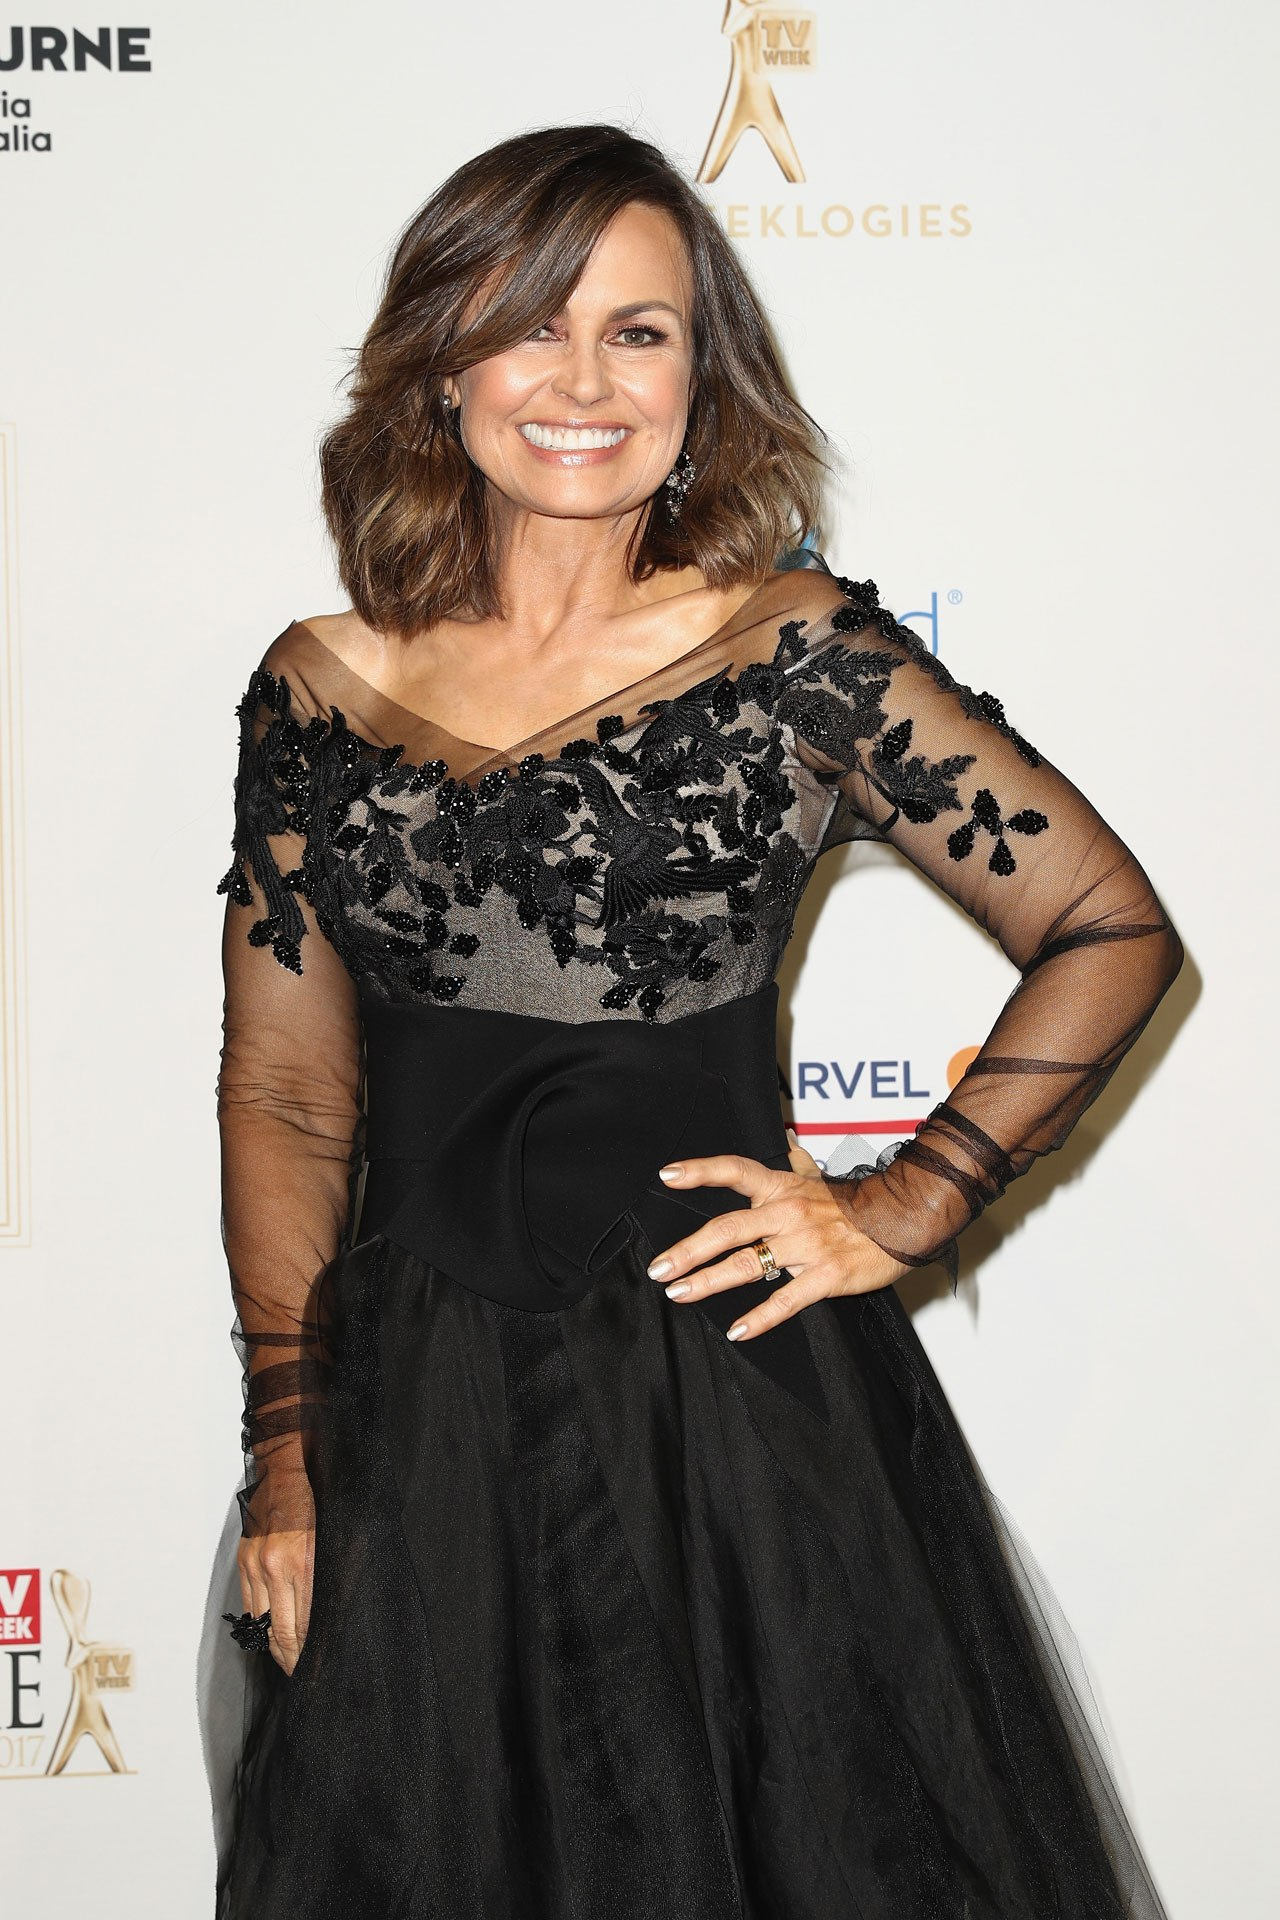 Lisa Wilkinson, TV presenter, journalist and Fred Hollows Foundation global ambassador